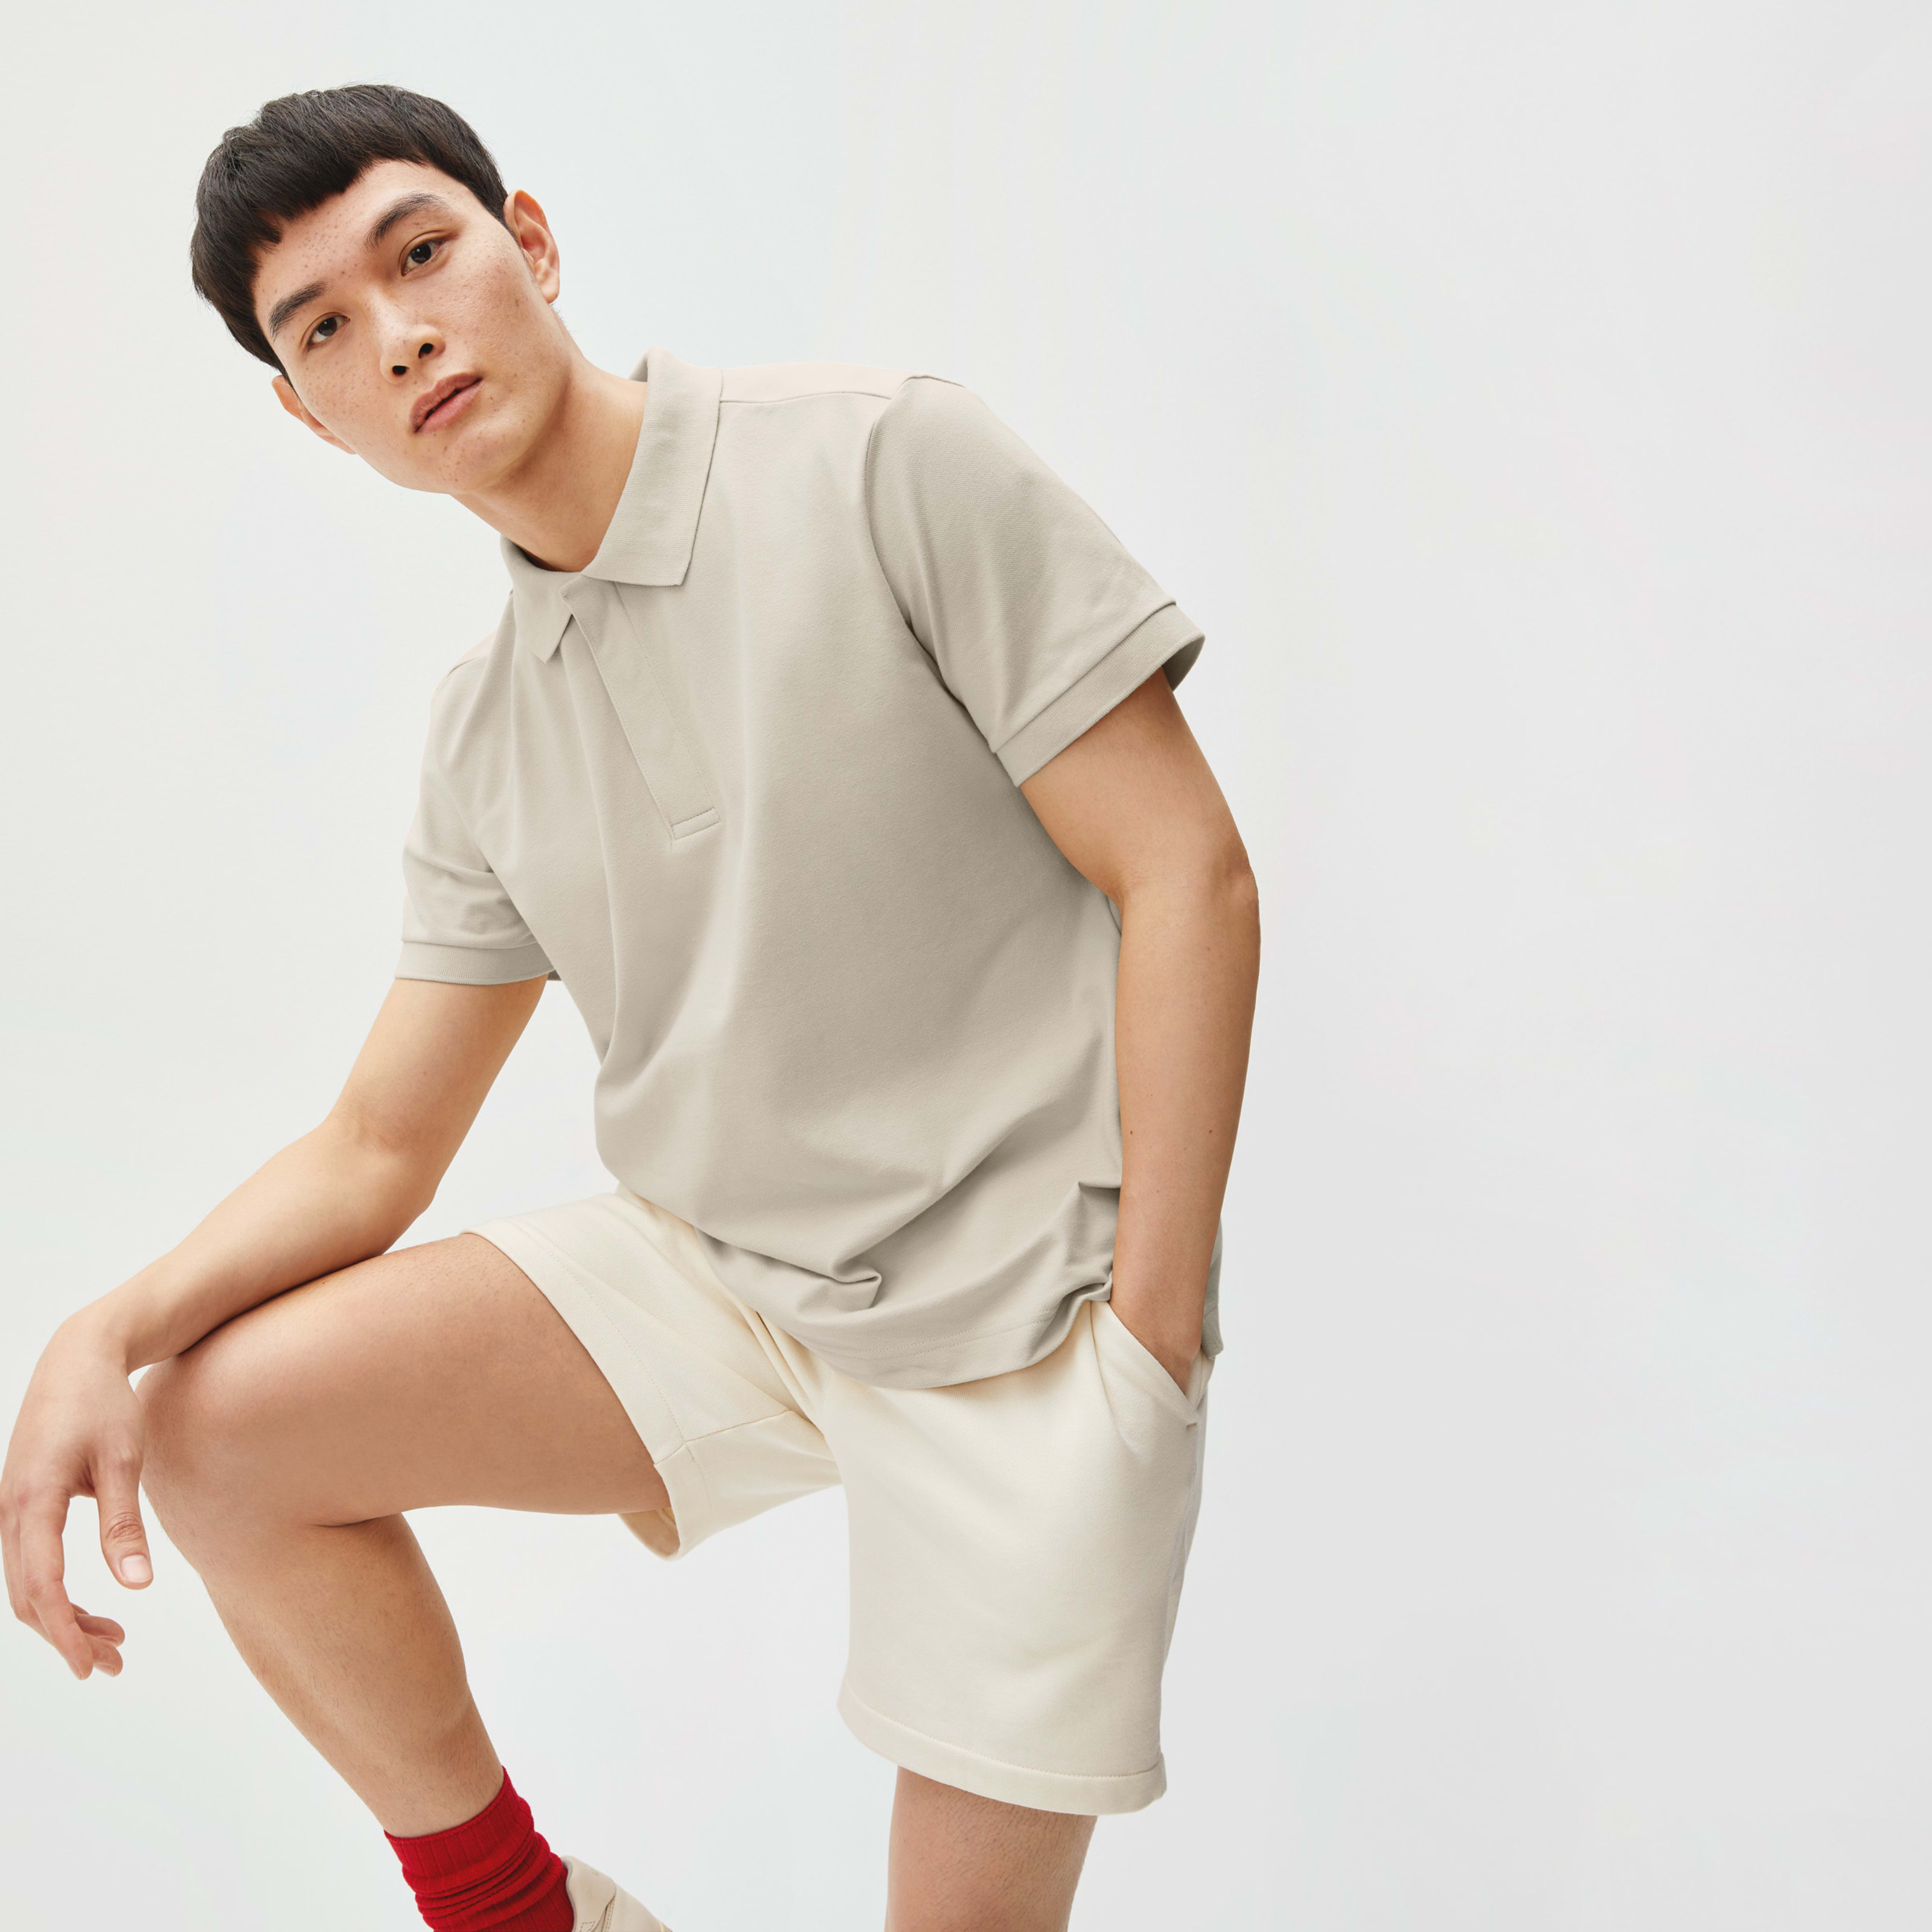 Men's Performance Polo T-Shirt By Everlane In Pale Khaki, Size Xs